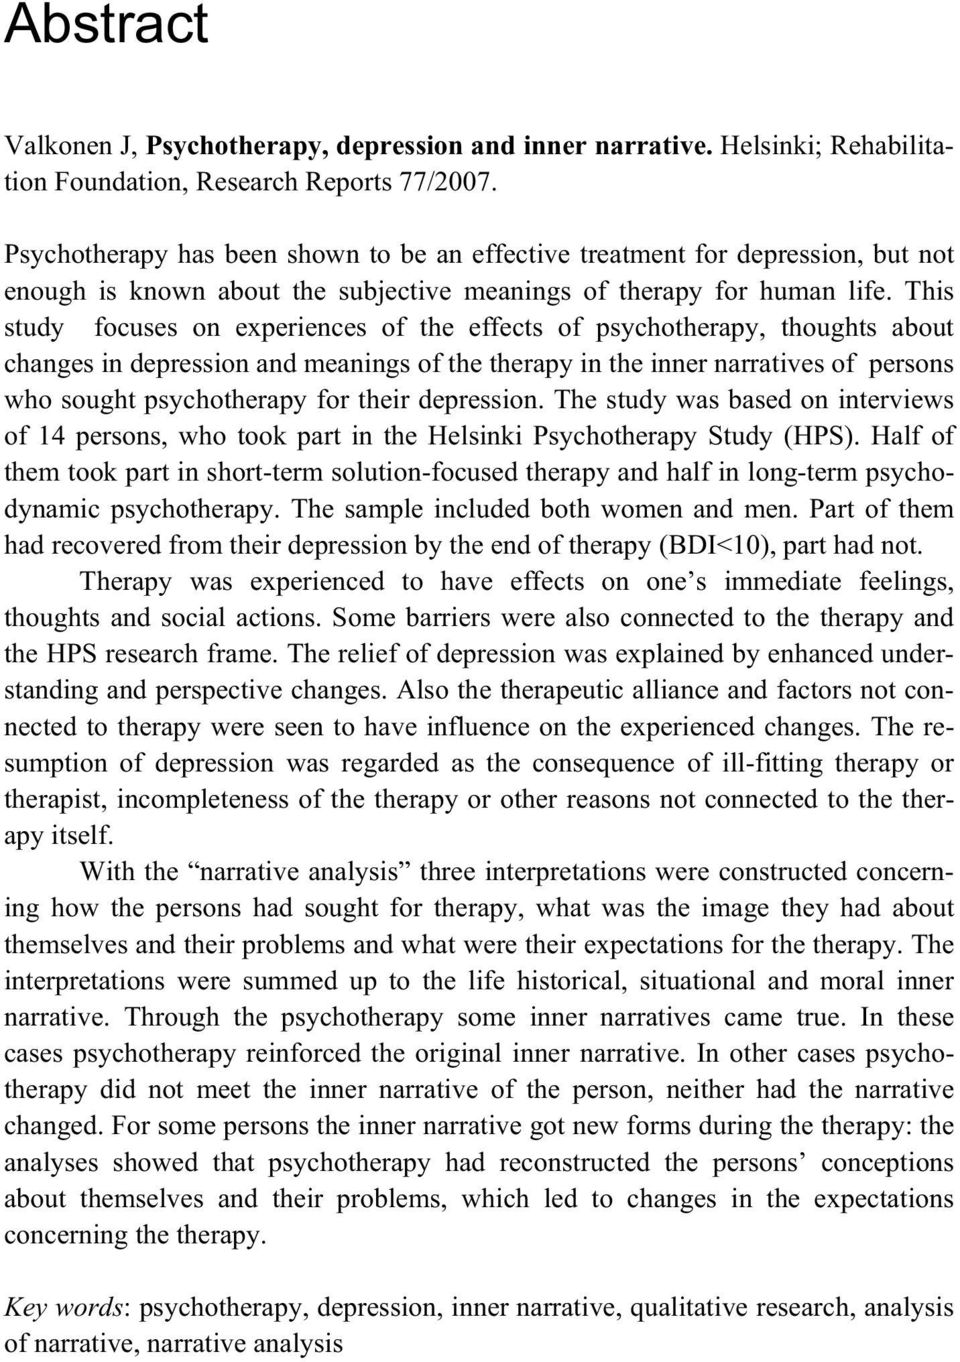 This study focuses on experiences of the effects of psychotherapy, thoughts about changes in depression and meanings of the therapy in the inner narratives of persons who sought psychotherapy for